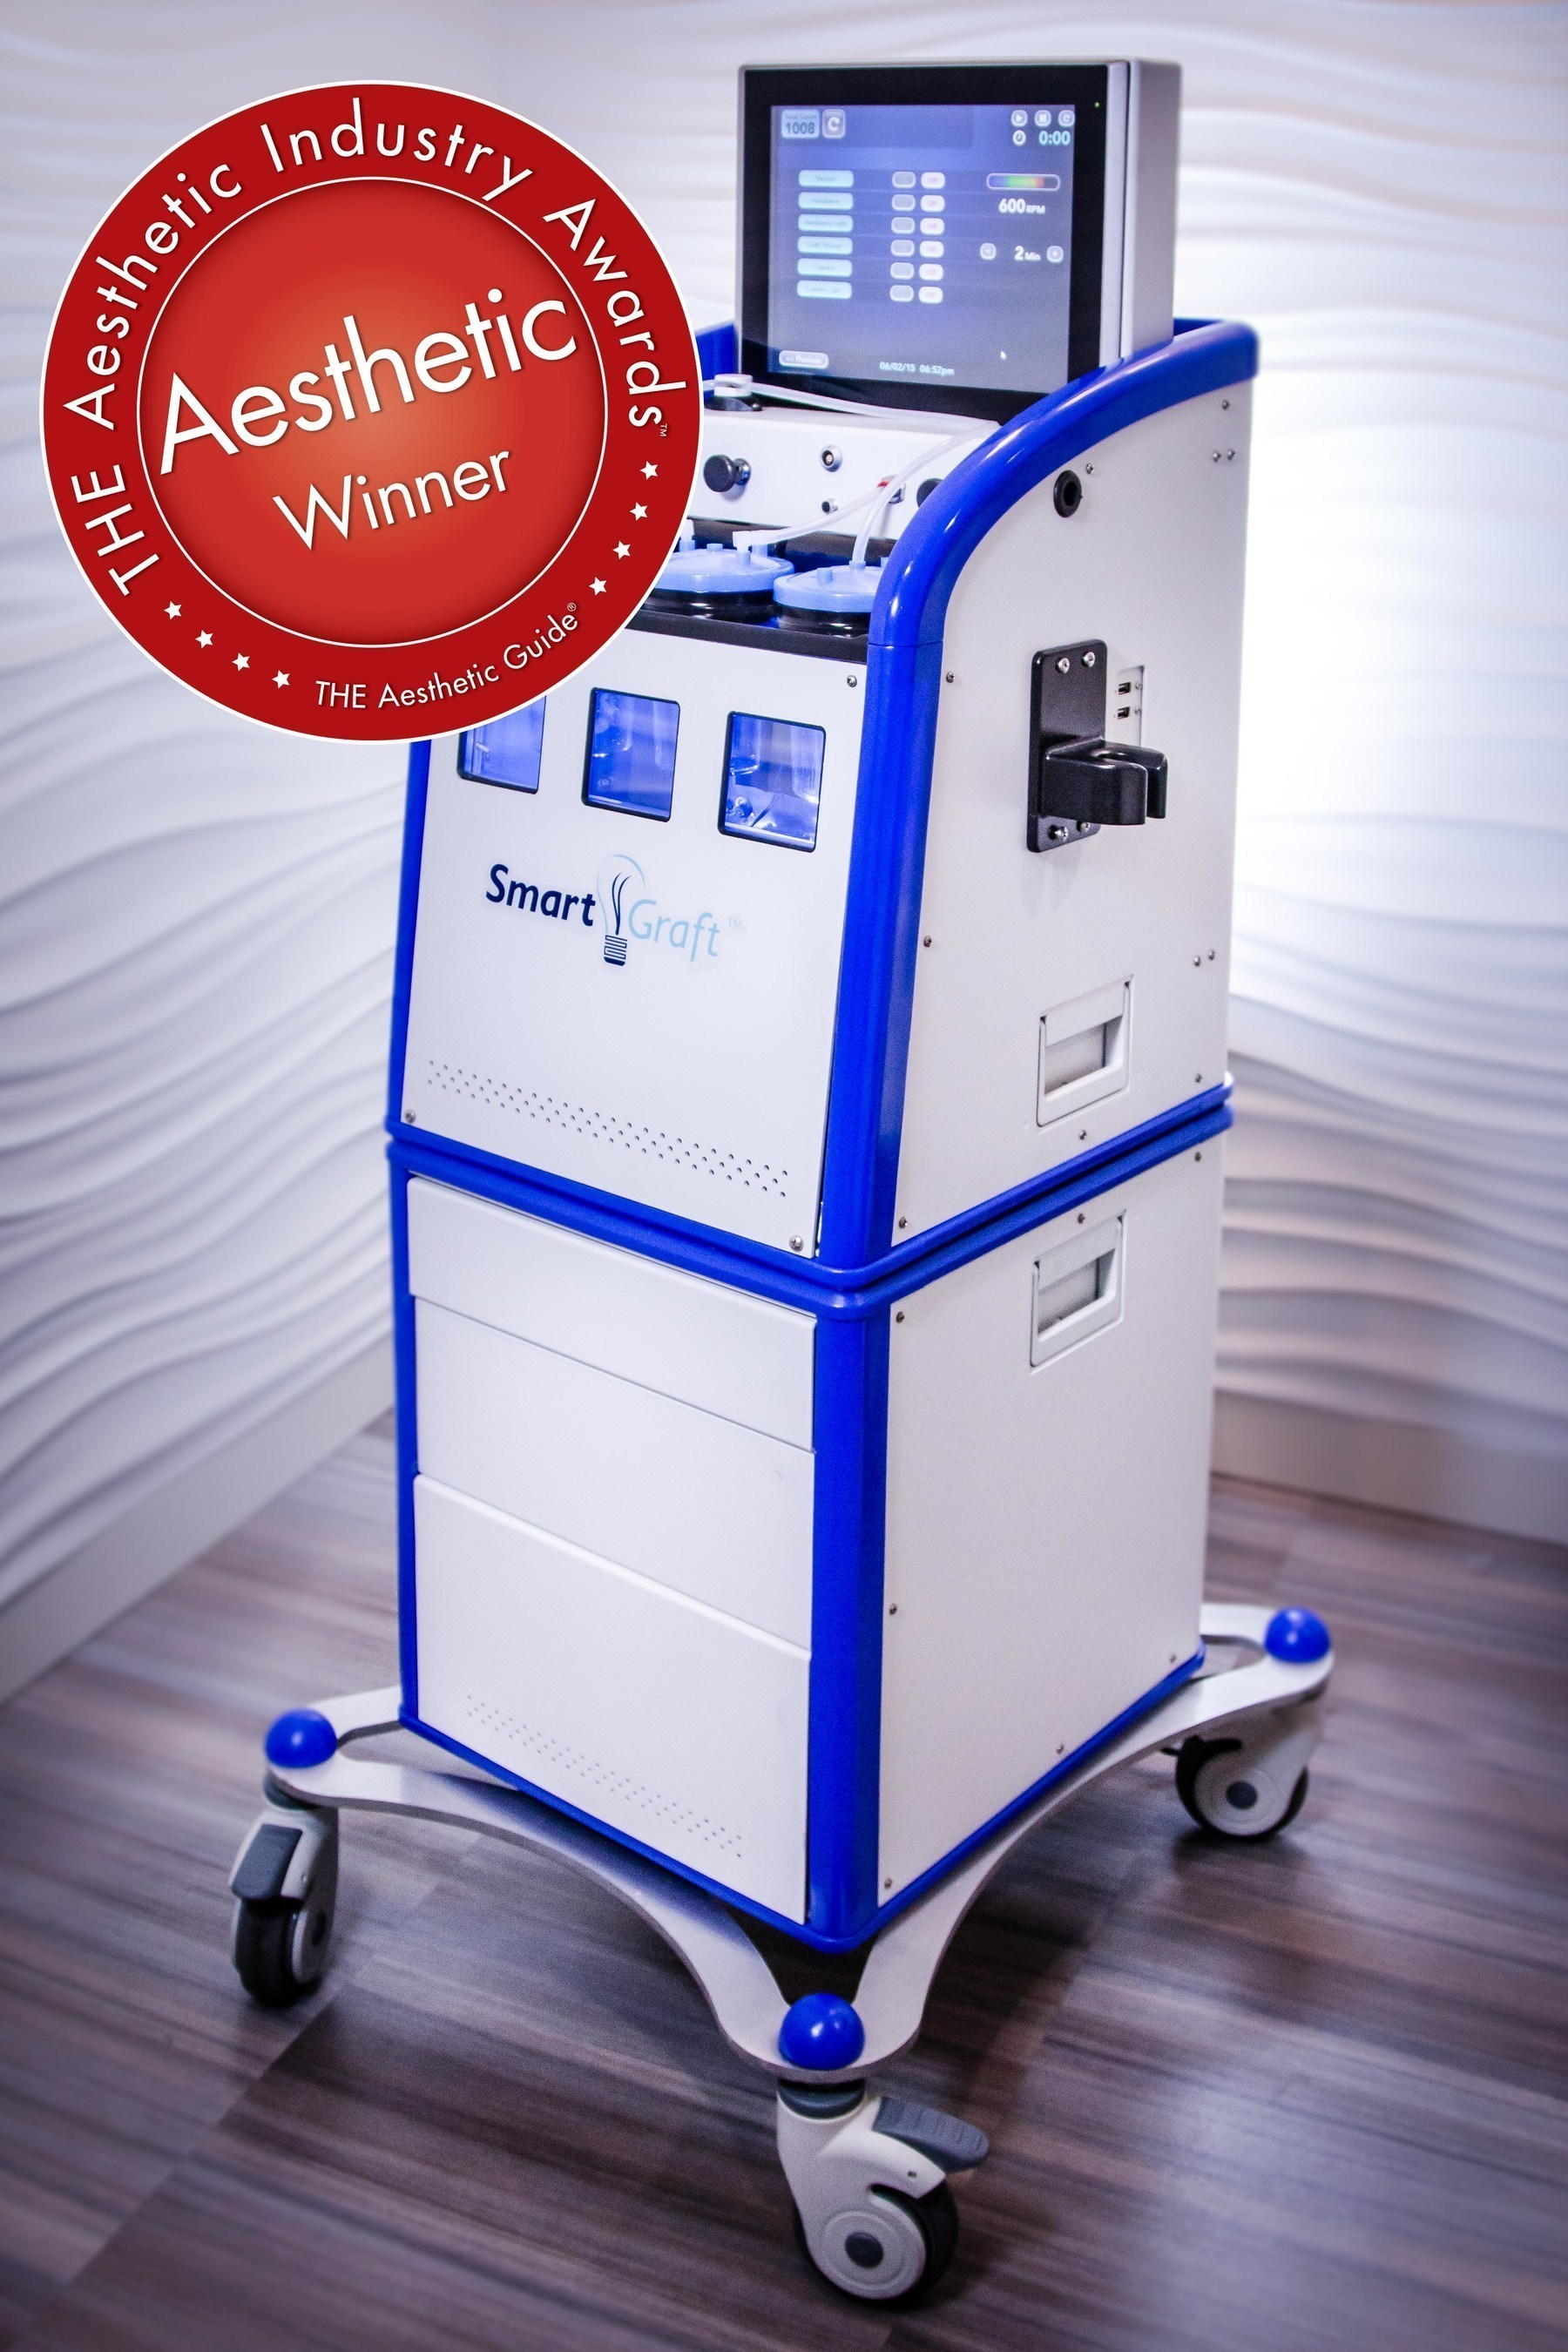 SmartGraft by Vision Medical Takes Award for Best Hair Restoration System in THE Aesthetic Industry